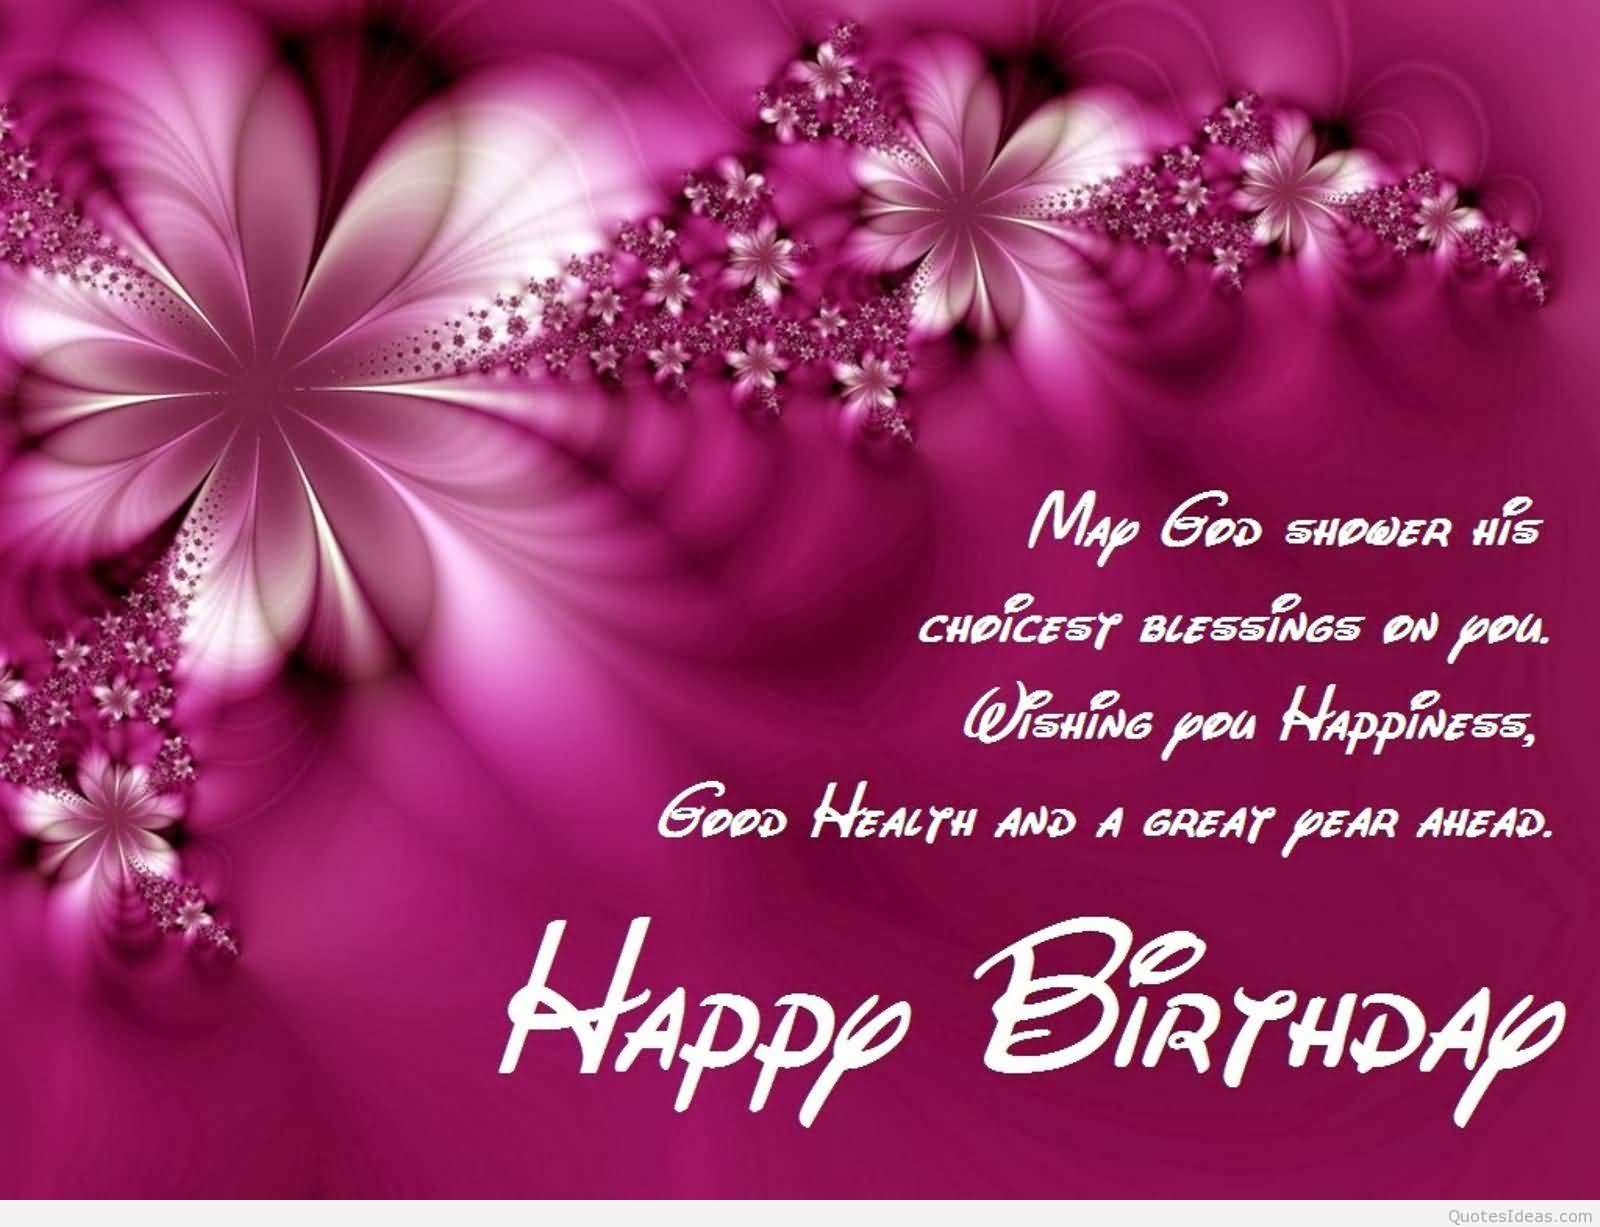 Happy Birthday Sayings my god shower his choicest